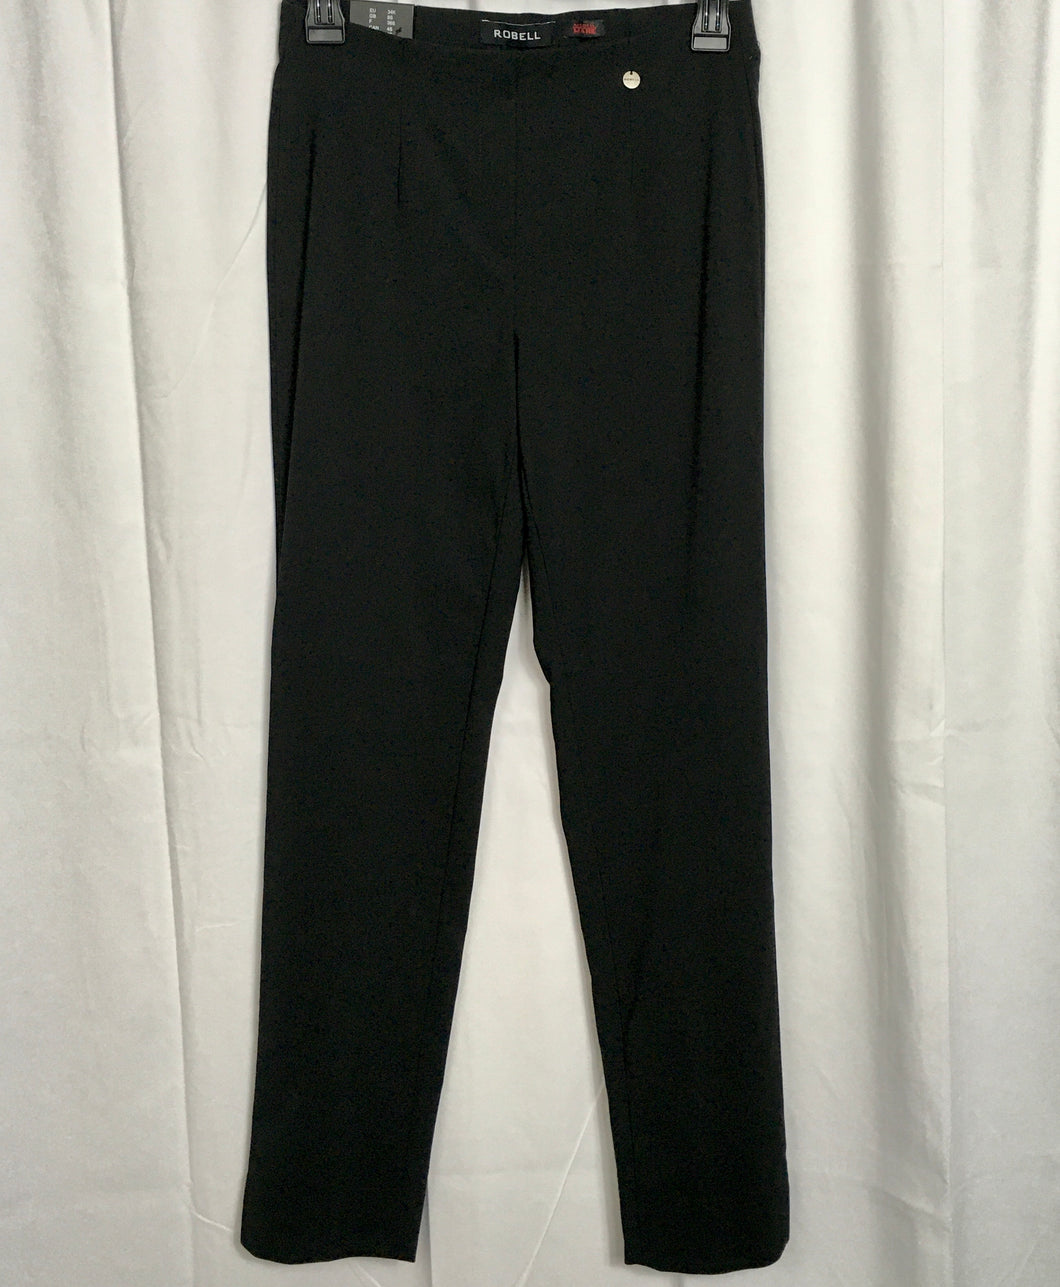 Black dress pant - seam up back